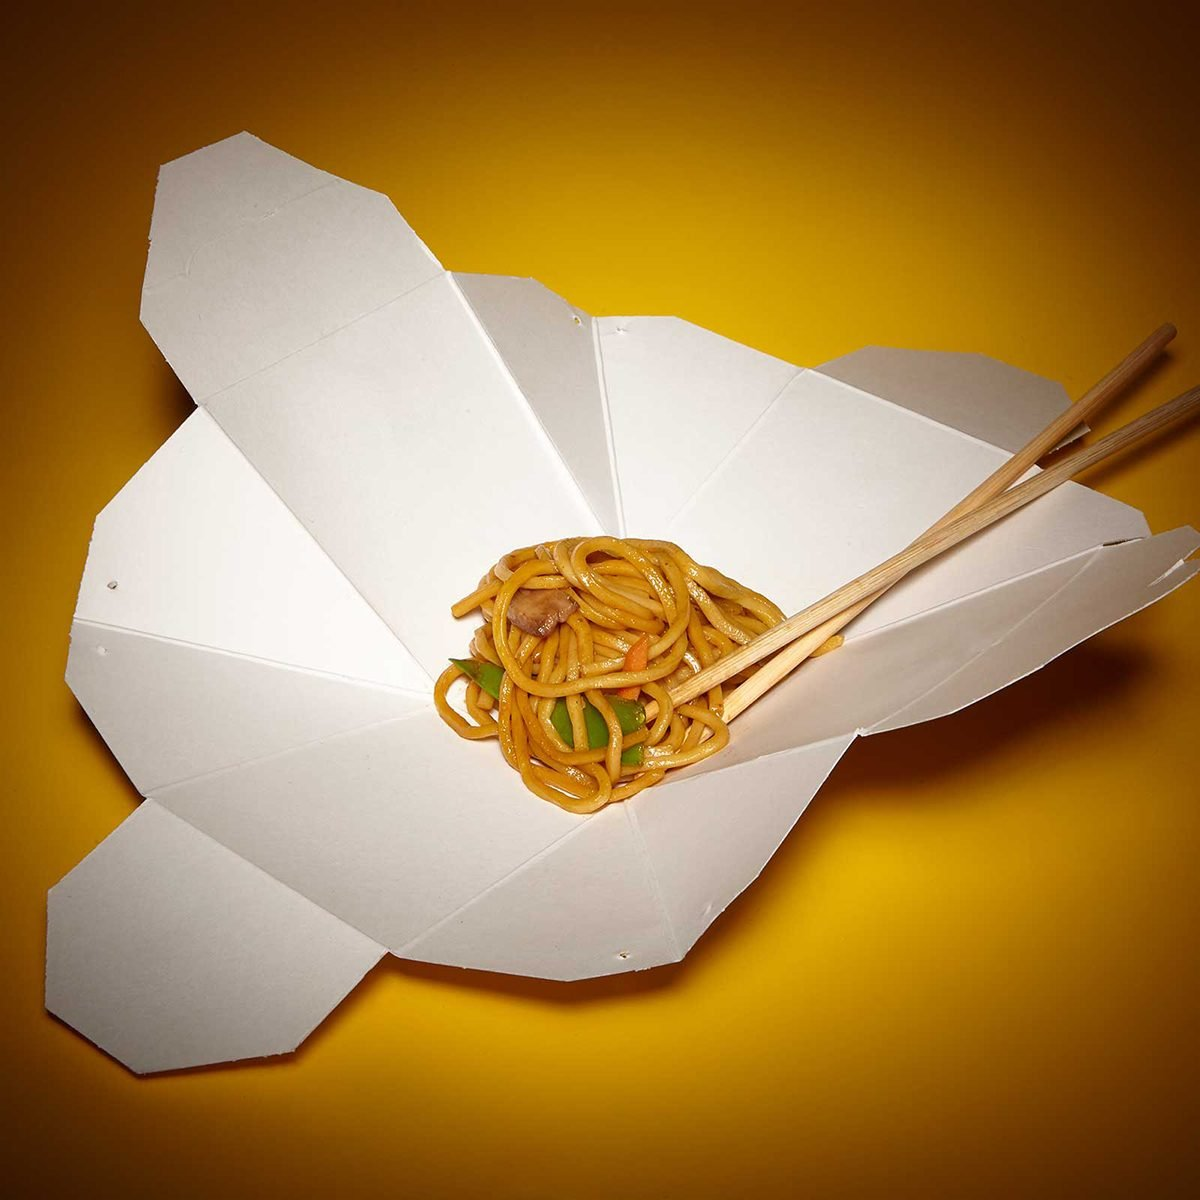 Unfolded Chinese take out container